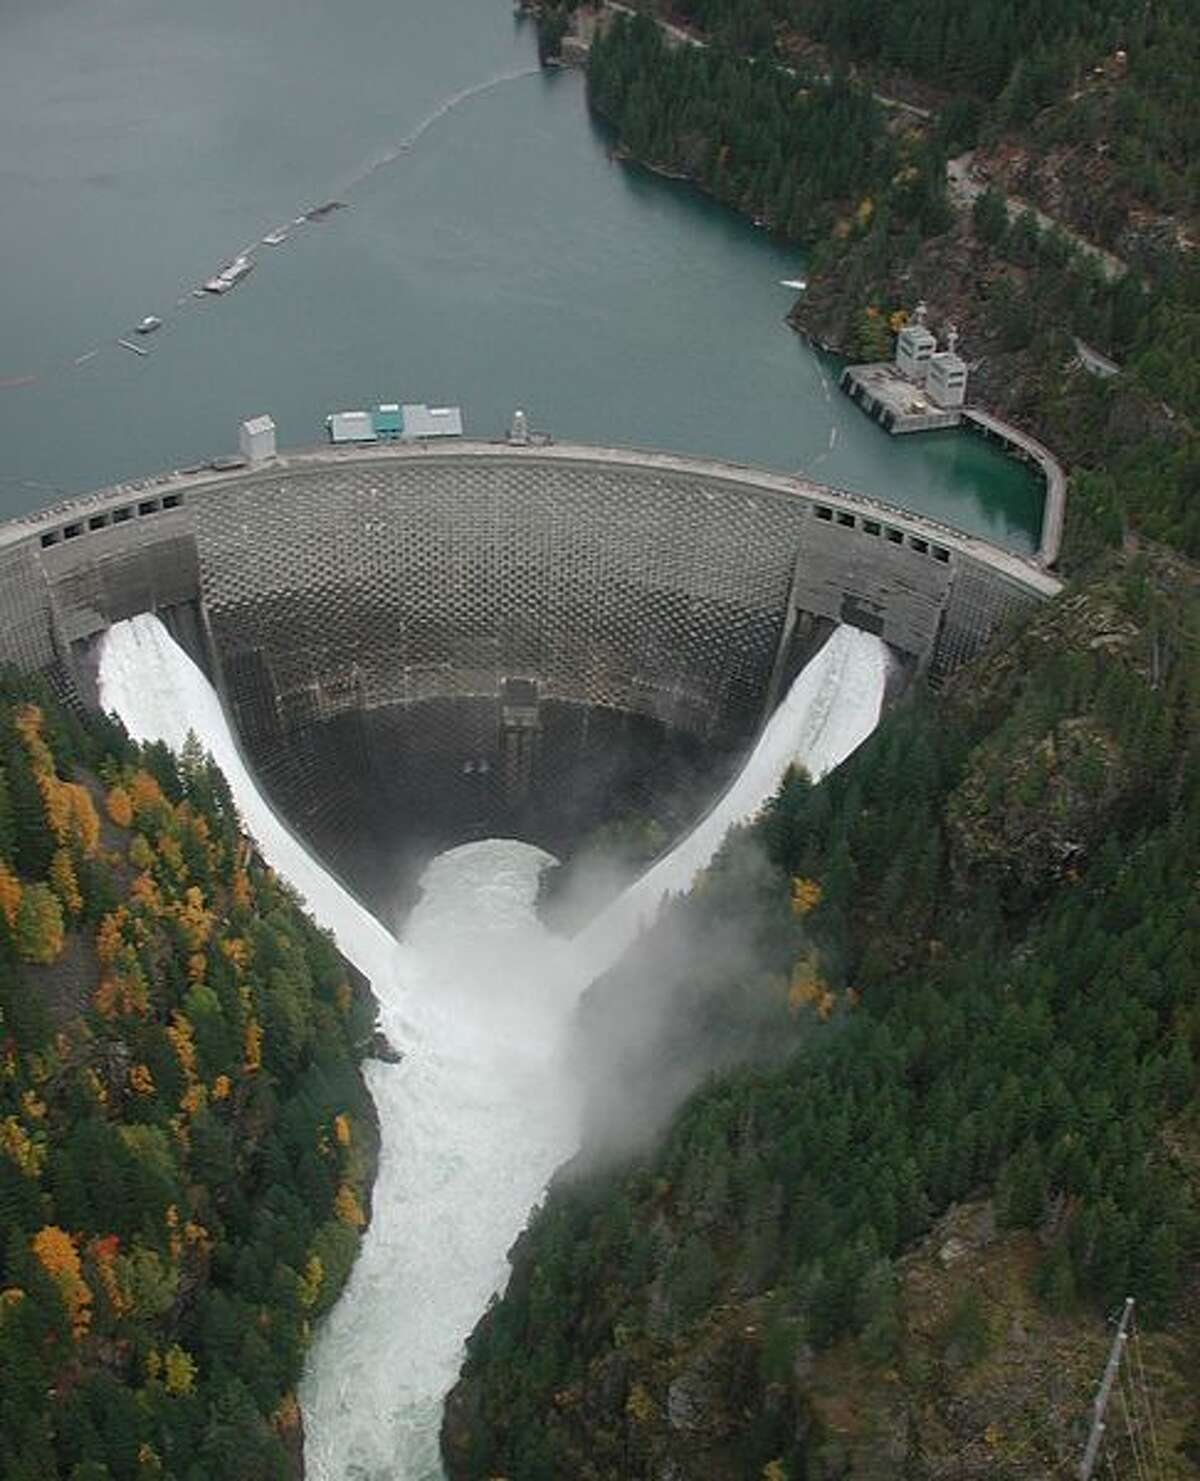 Ross Dam on the Skagit River. Melt from the winter snow pack fills the reservoir behind the 505' high dam, which generates electricity for Seattle City Light.